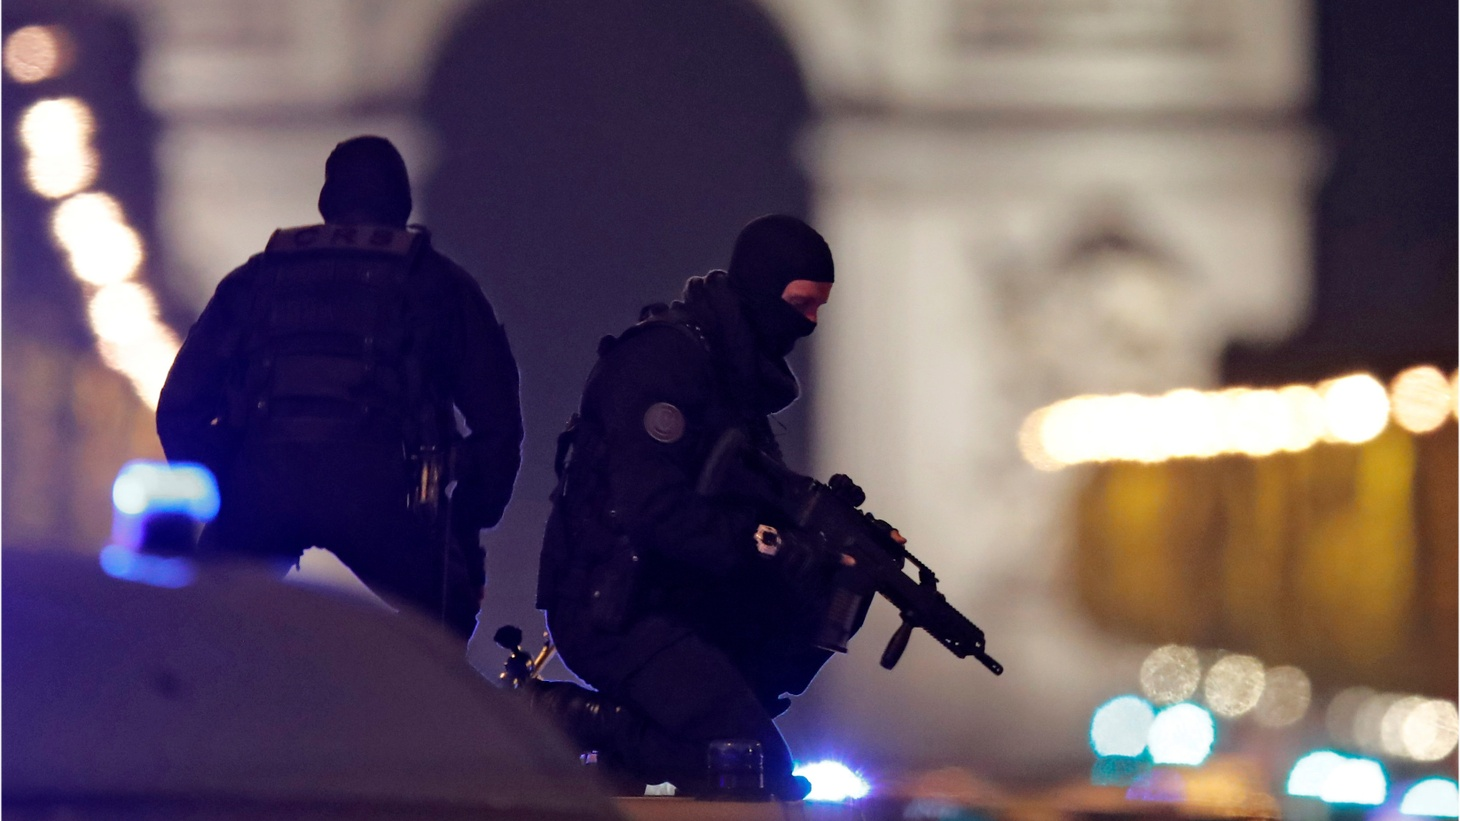 There was another terrorist attack in Paris Thursday. A police officer was killed, two other officers were wounded, and the shooter was killed. Officials are calling the attack terrorism. There have been more than a half dozen terrorist attacks in France over the past two years.